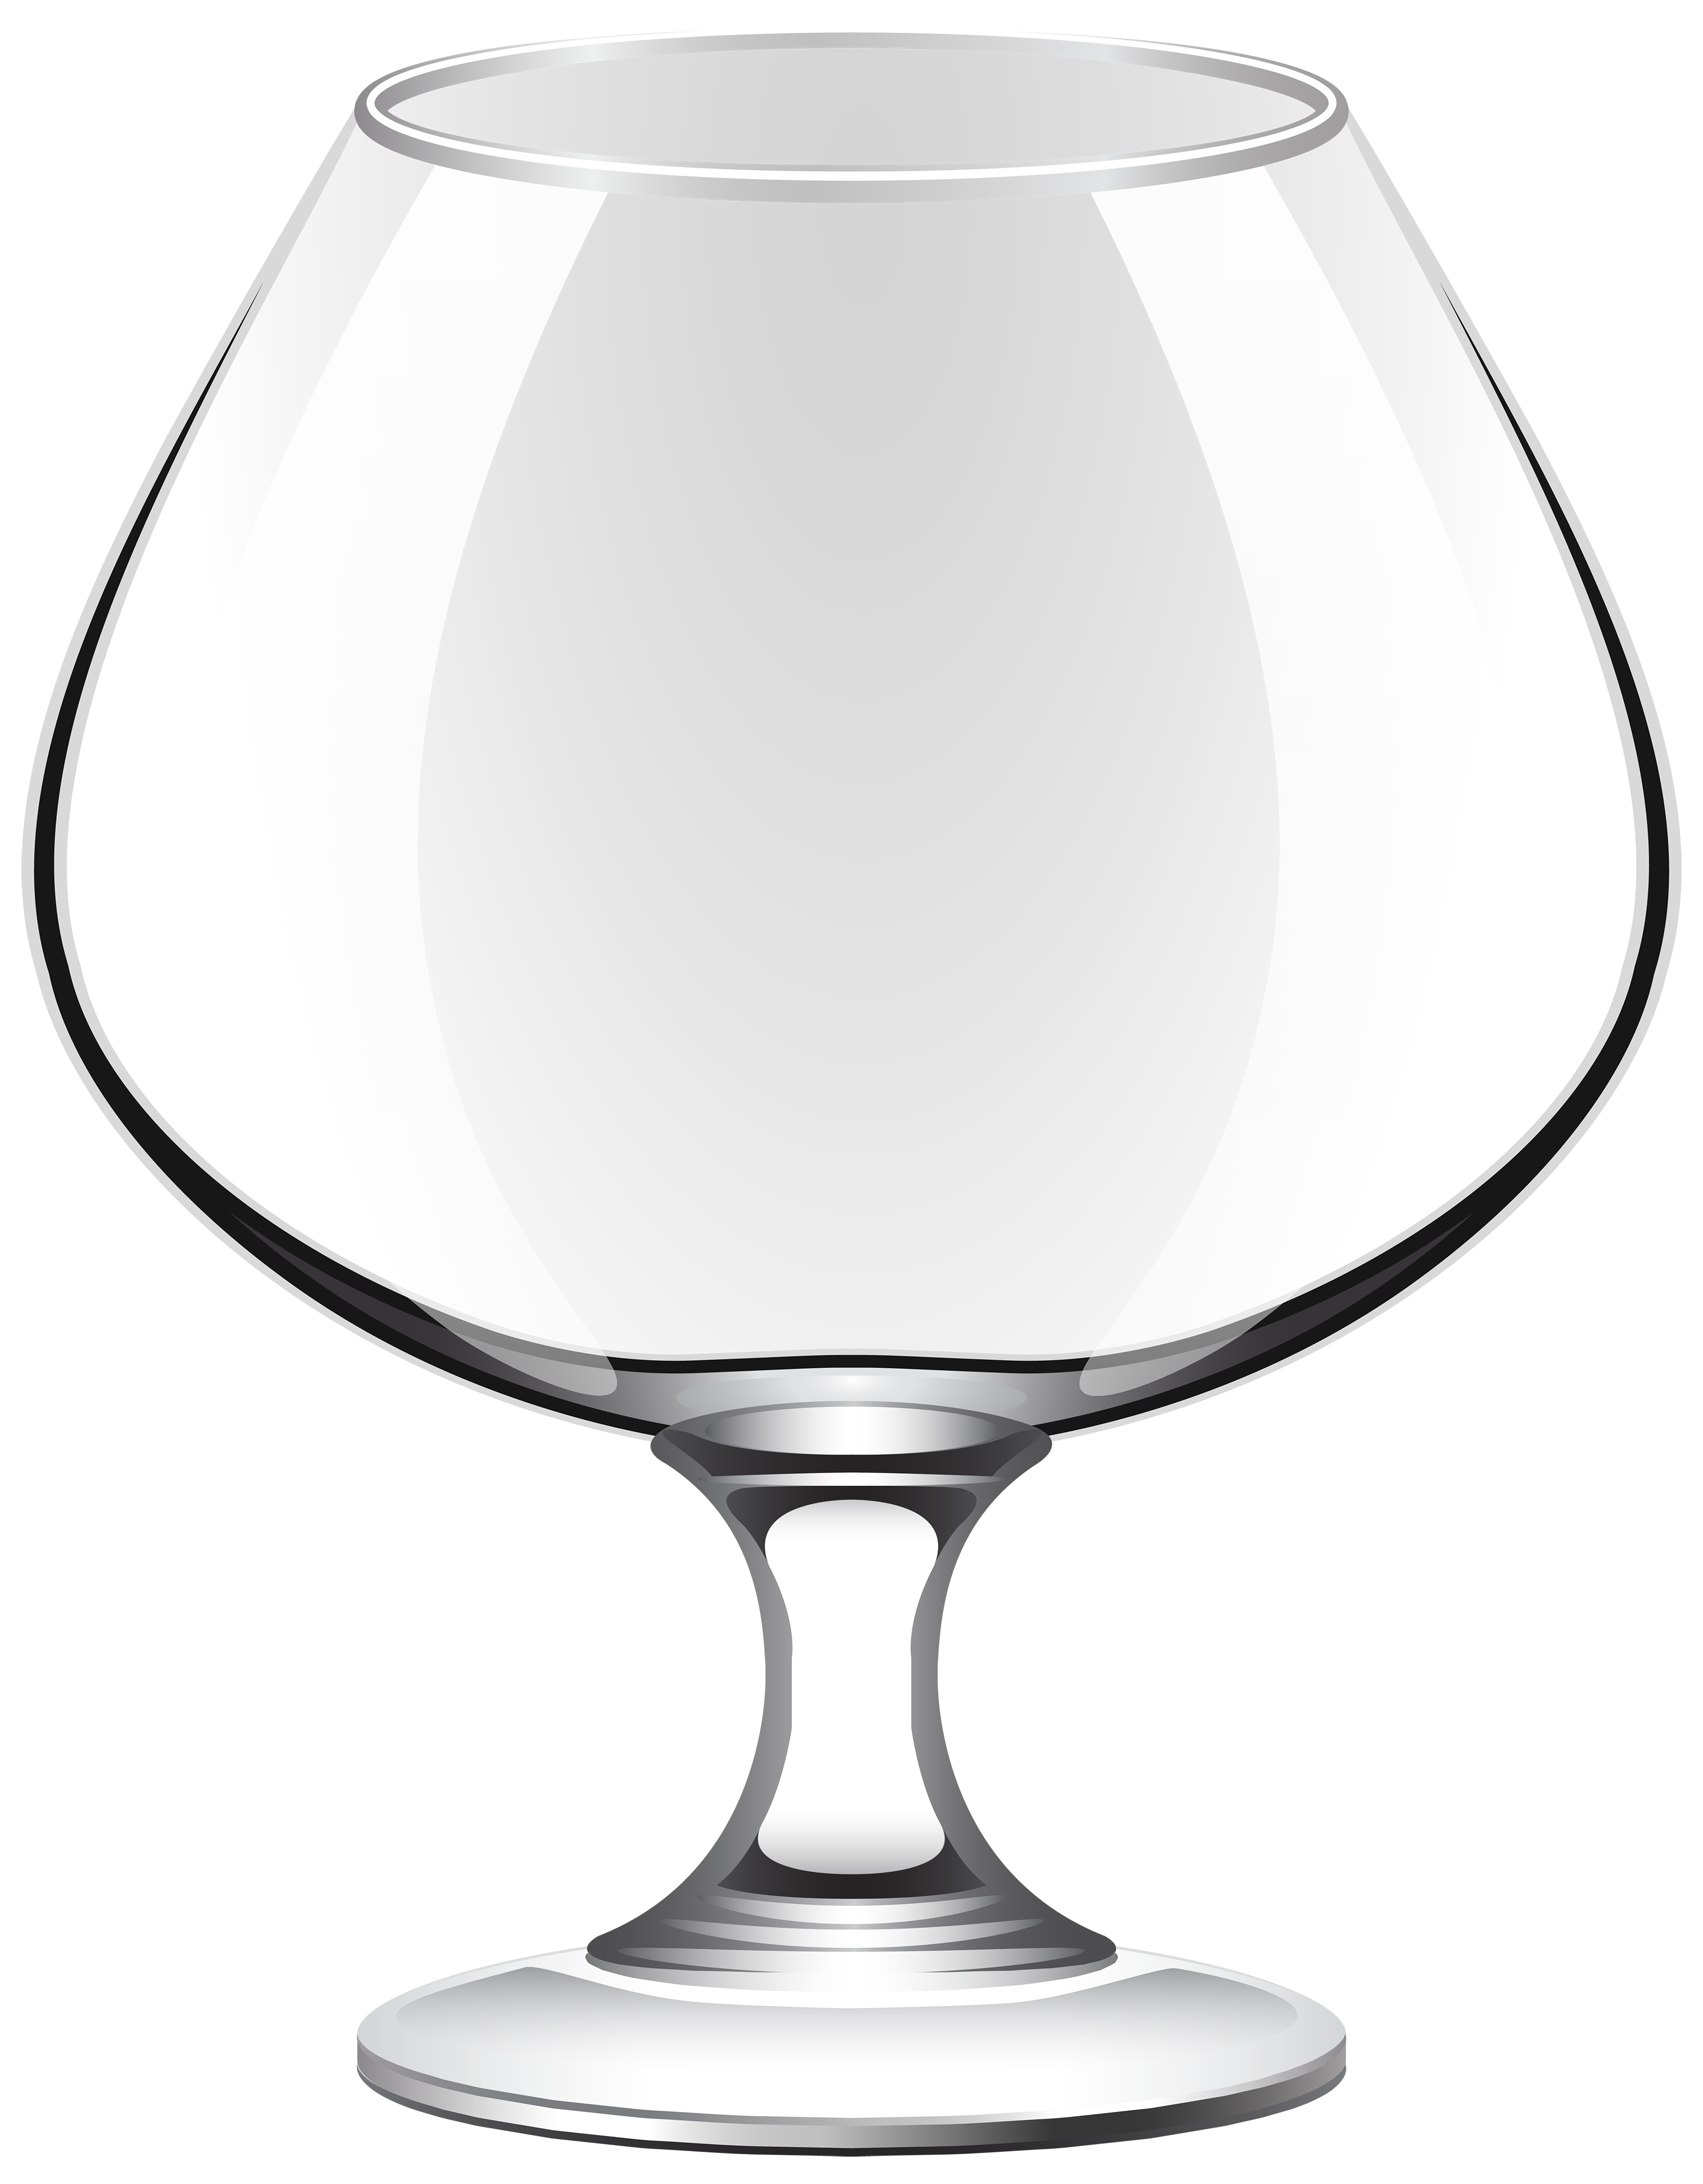 Brandy glass clipart clipart free Transparent Brandy Glass PNG Clipart - Best WEB Clipart clipart free